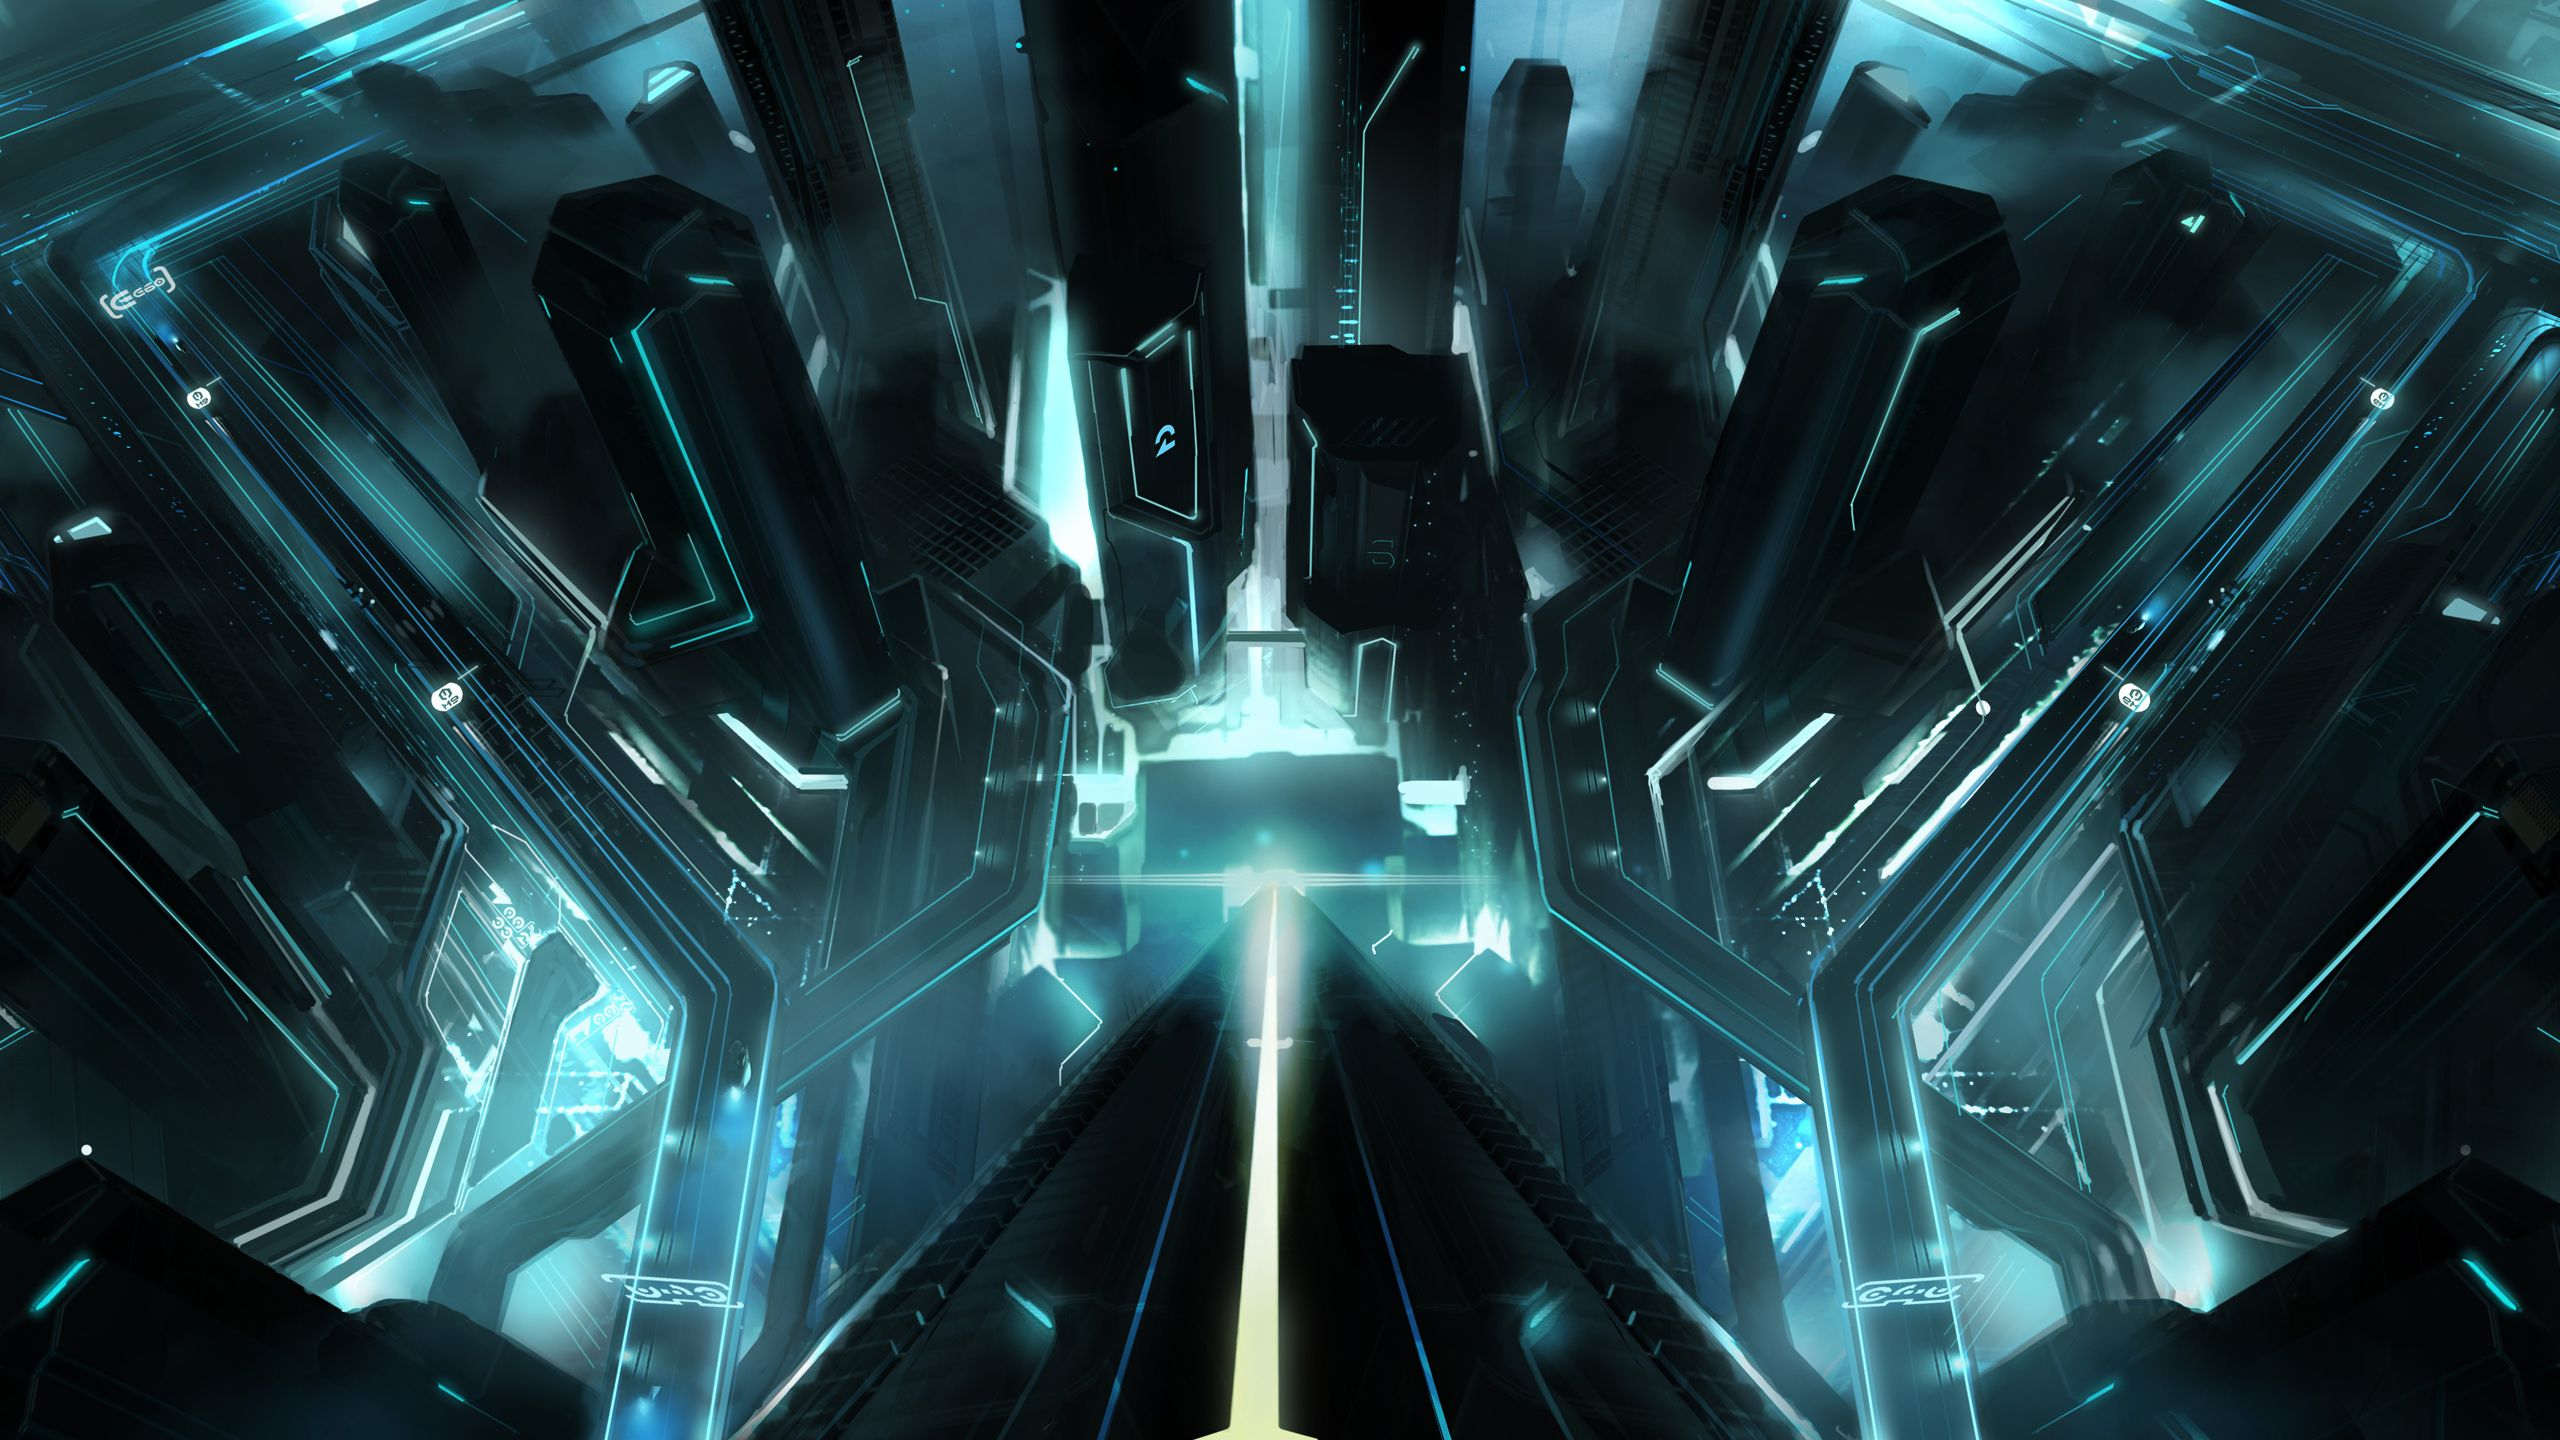 There Was 28 Years Between The Original Tron And Tron Legacy But Luckily For Tron Fans There Wait May Not Have To Be That Long For A F Konzeptkunst Tron Grafik